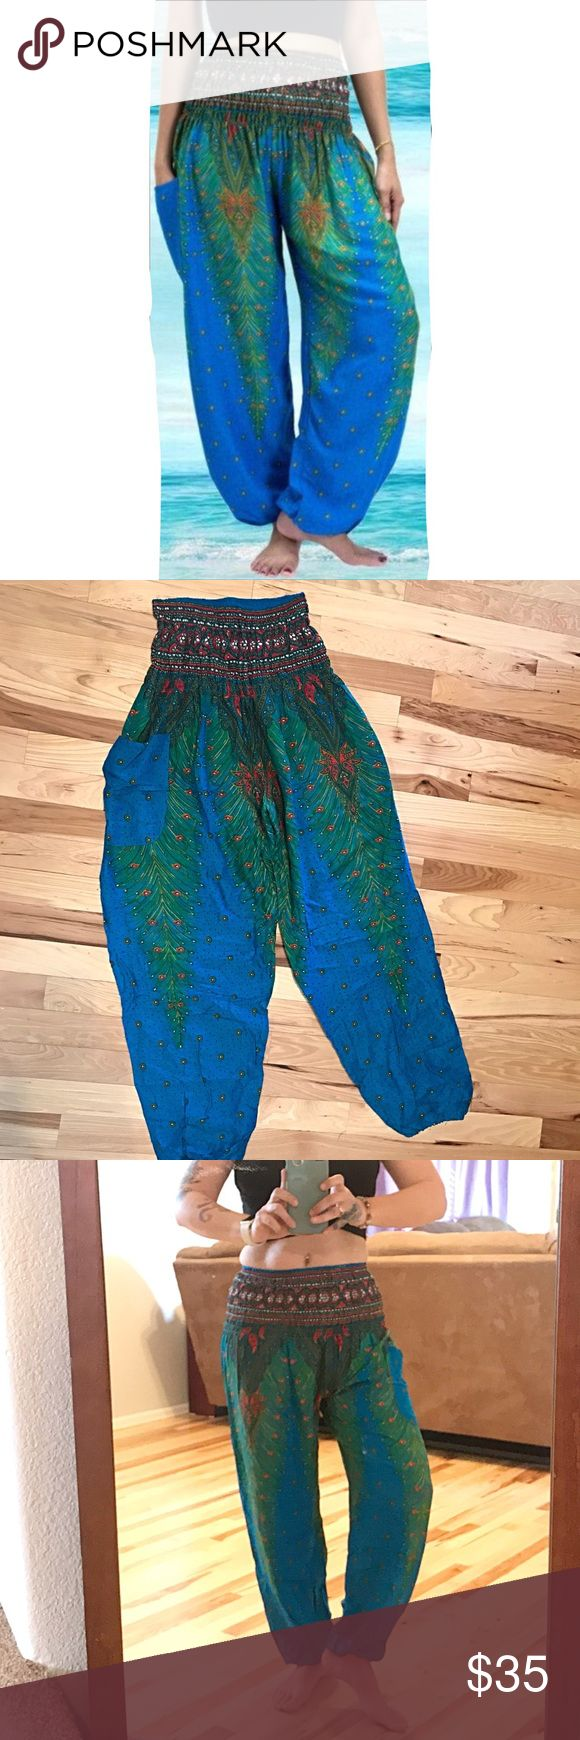 Hippie Boho Harem Pants Blue Green Festival Yoga Hippie Boho Harem Pants Blue Green Festival Yoga Wise leg Pants. Wide elastic band. Waist unstretched is 12 inches stretched is 16 inches inseam is 27 inches and length from top of waist to bottom hem measures 42 inches. One size fits most. Fits Small Medium Large and XL. New in package. Pants Wide Leg